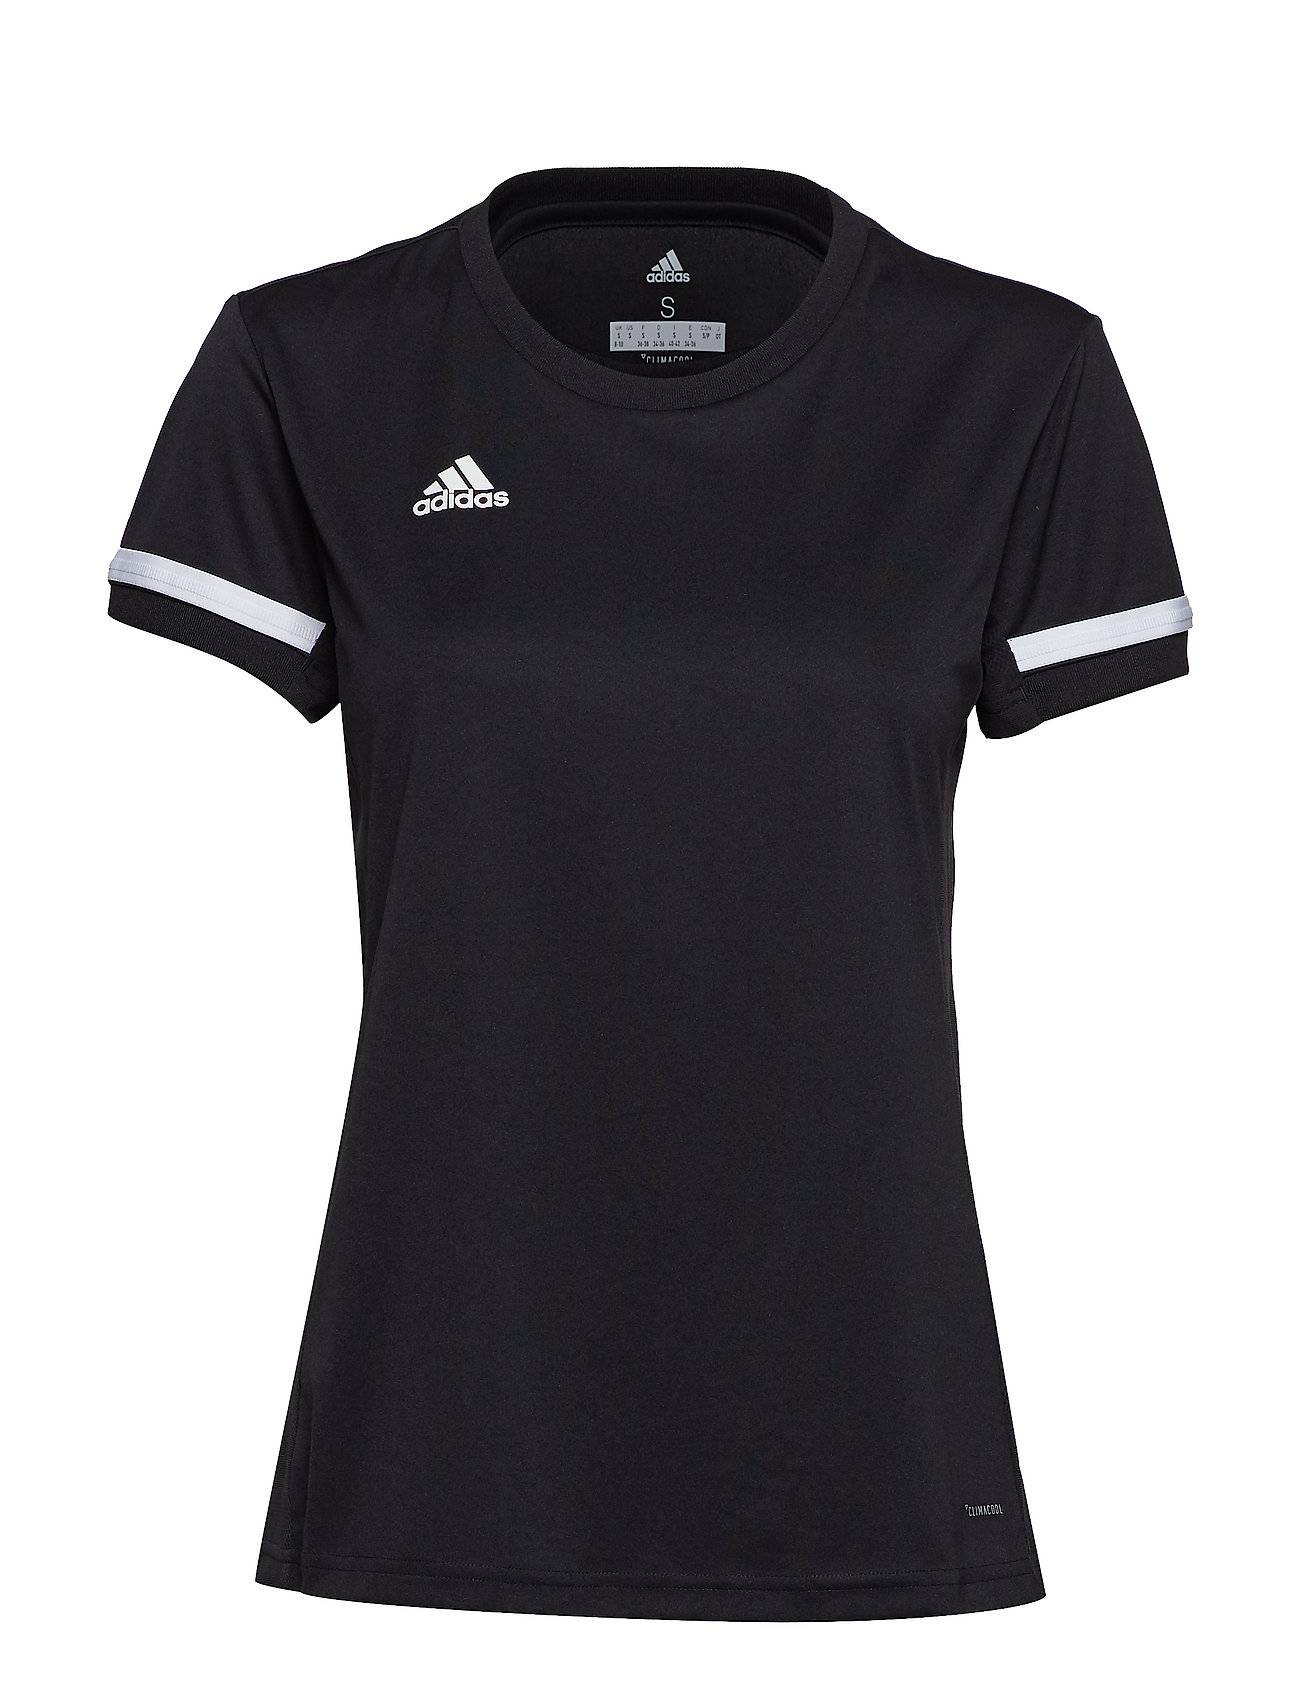 Image of adidas Performance T19 Ss Jsy W T-shirts & Tops Short-sleeved Musta Adidas Performance